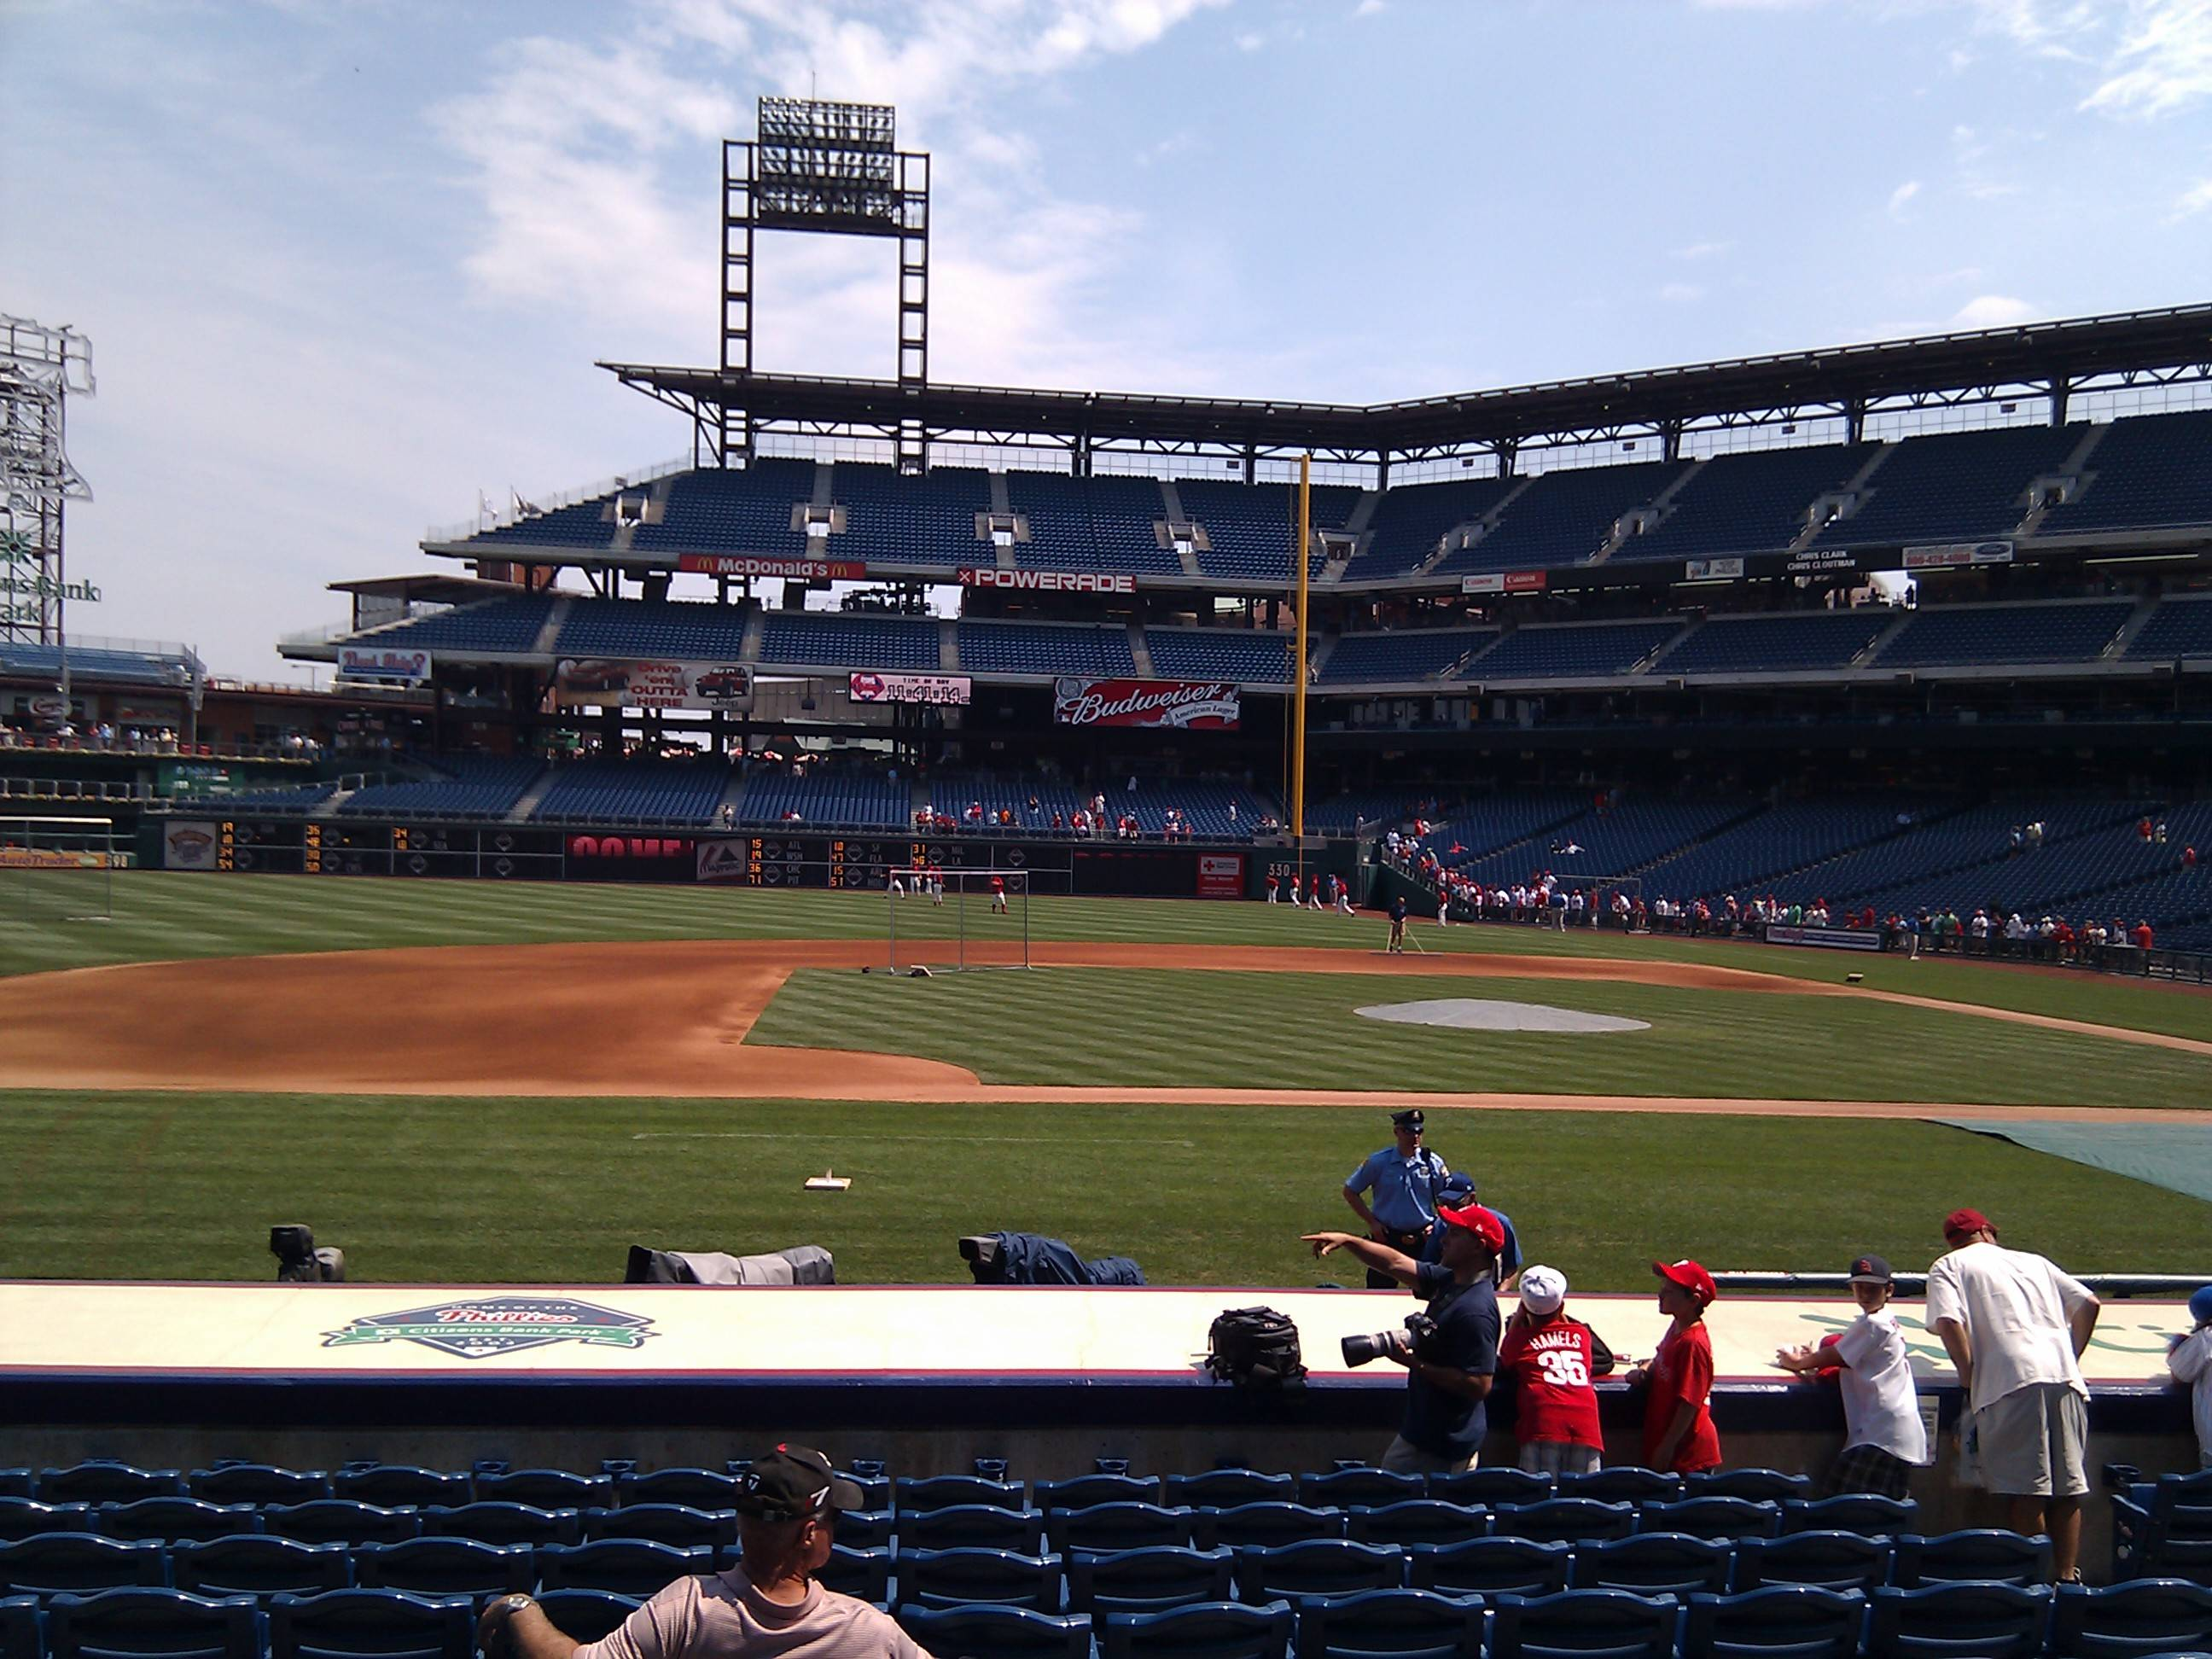 Citizens Bank Park Section 131 Row 11 Seat 7